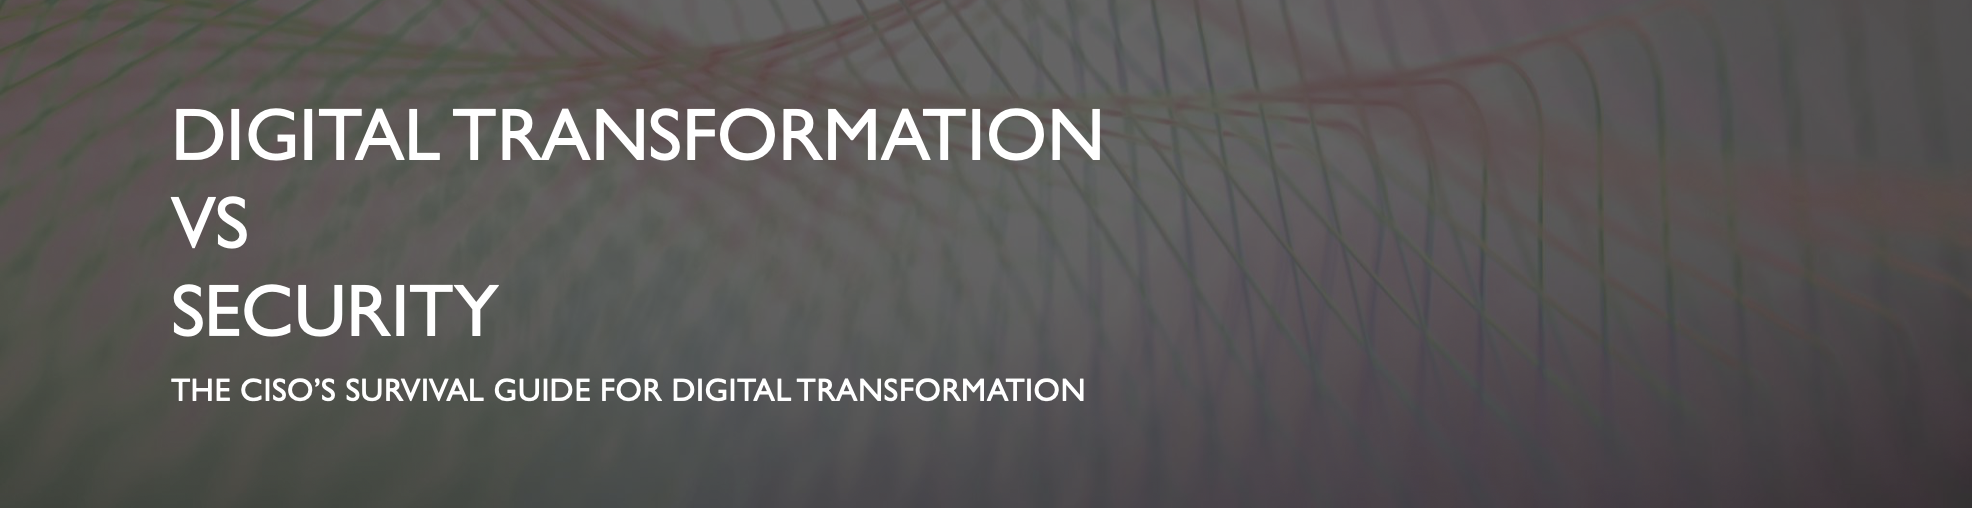 CISO Survival Guide: How to Balance Digital Transformation and Security https://www.enzoic.com/digital-transformation-and-security/